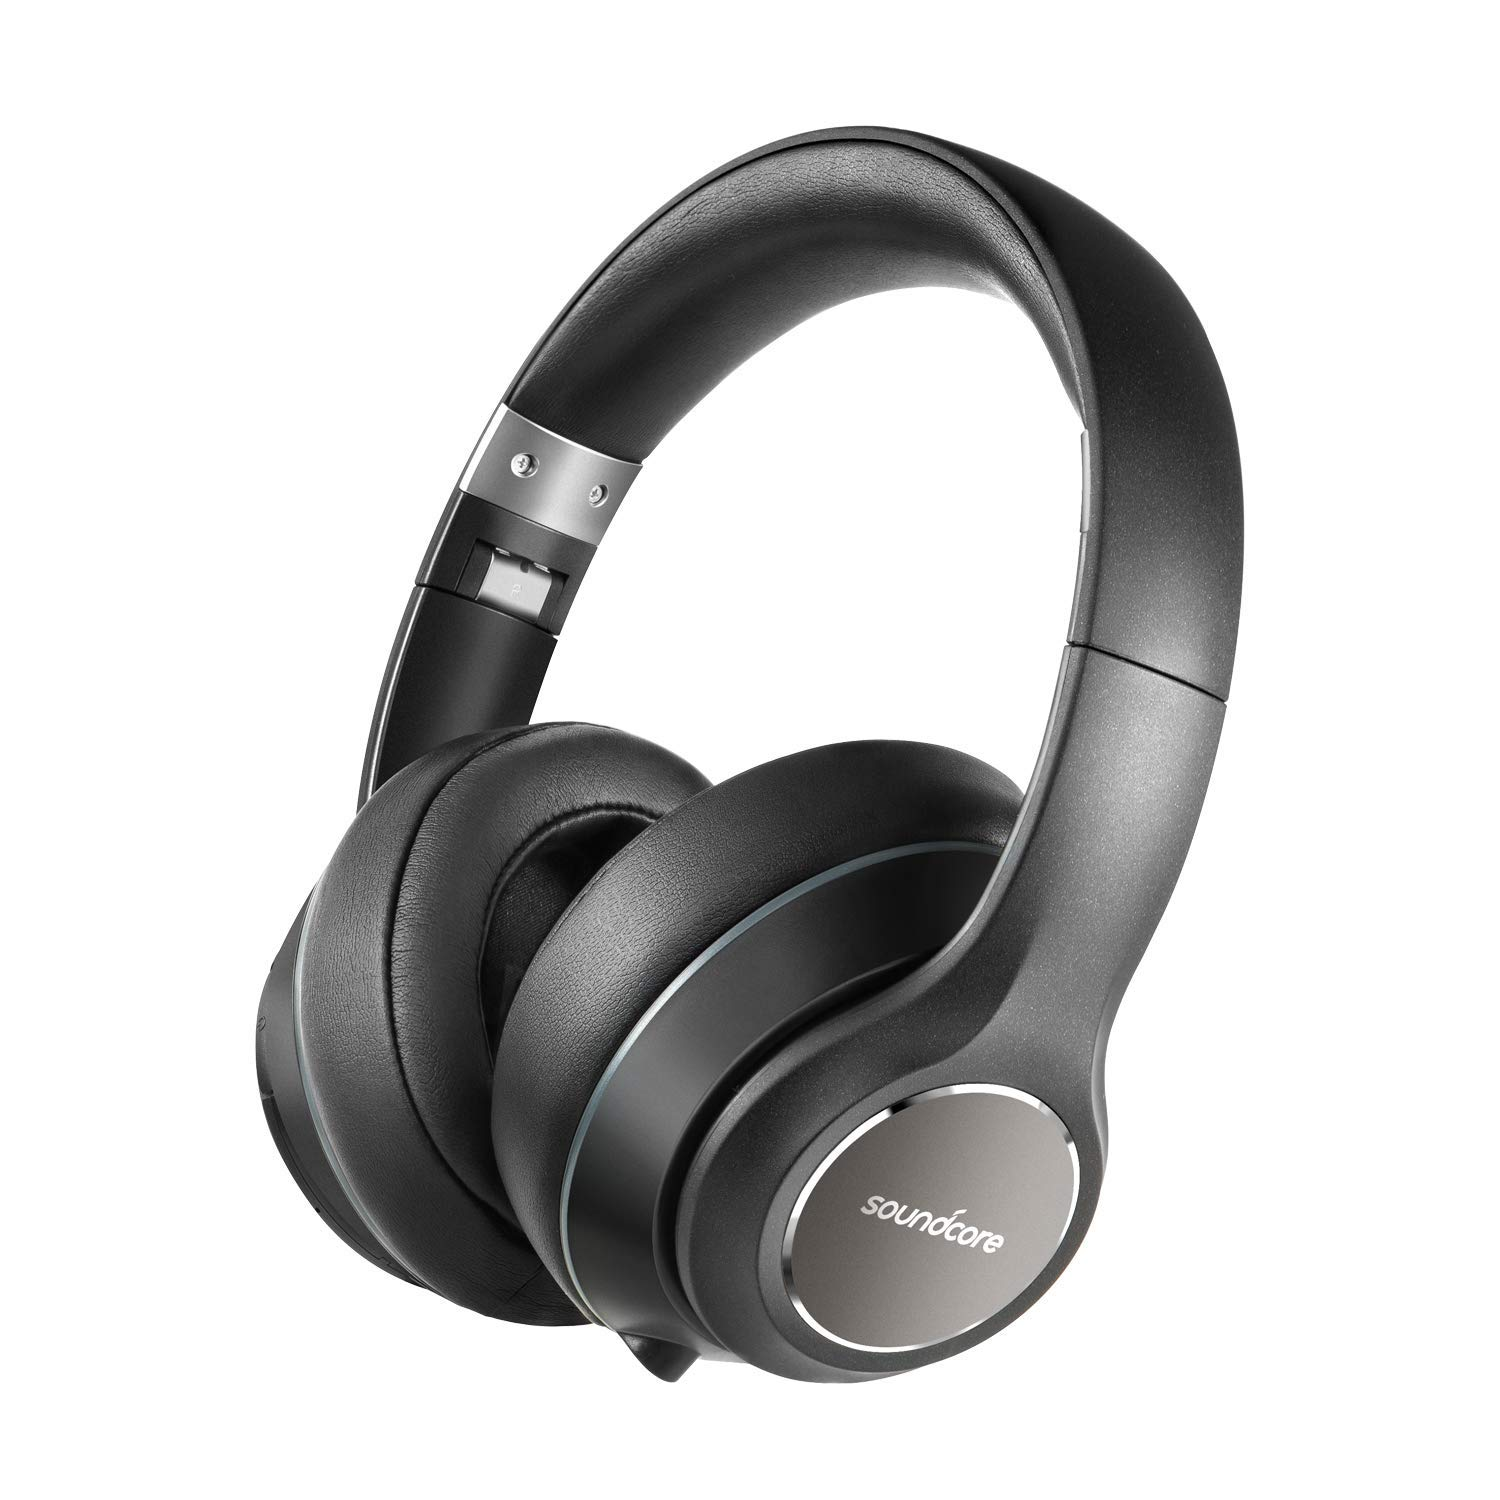 Anker Soundcore Vortex Bluetooth 4.2 Headphones – Hi-Fi Stereo Headphones